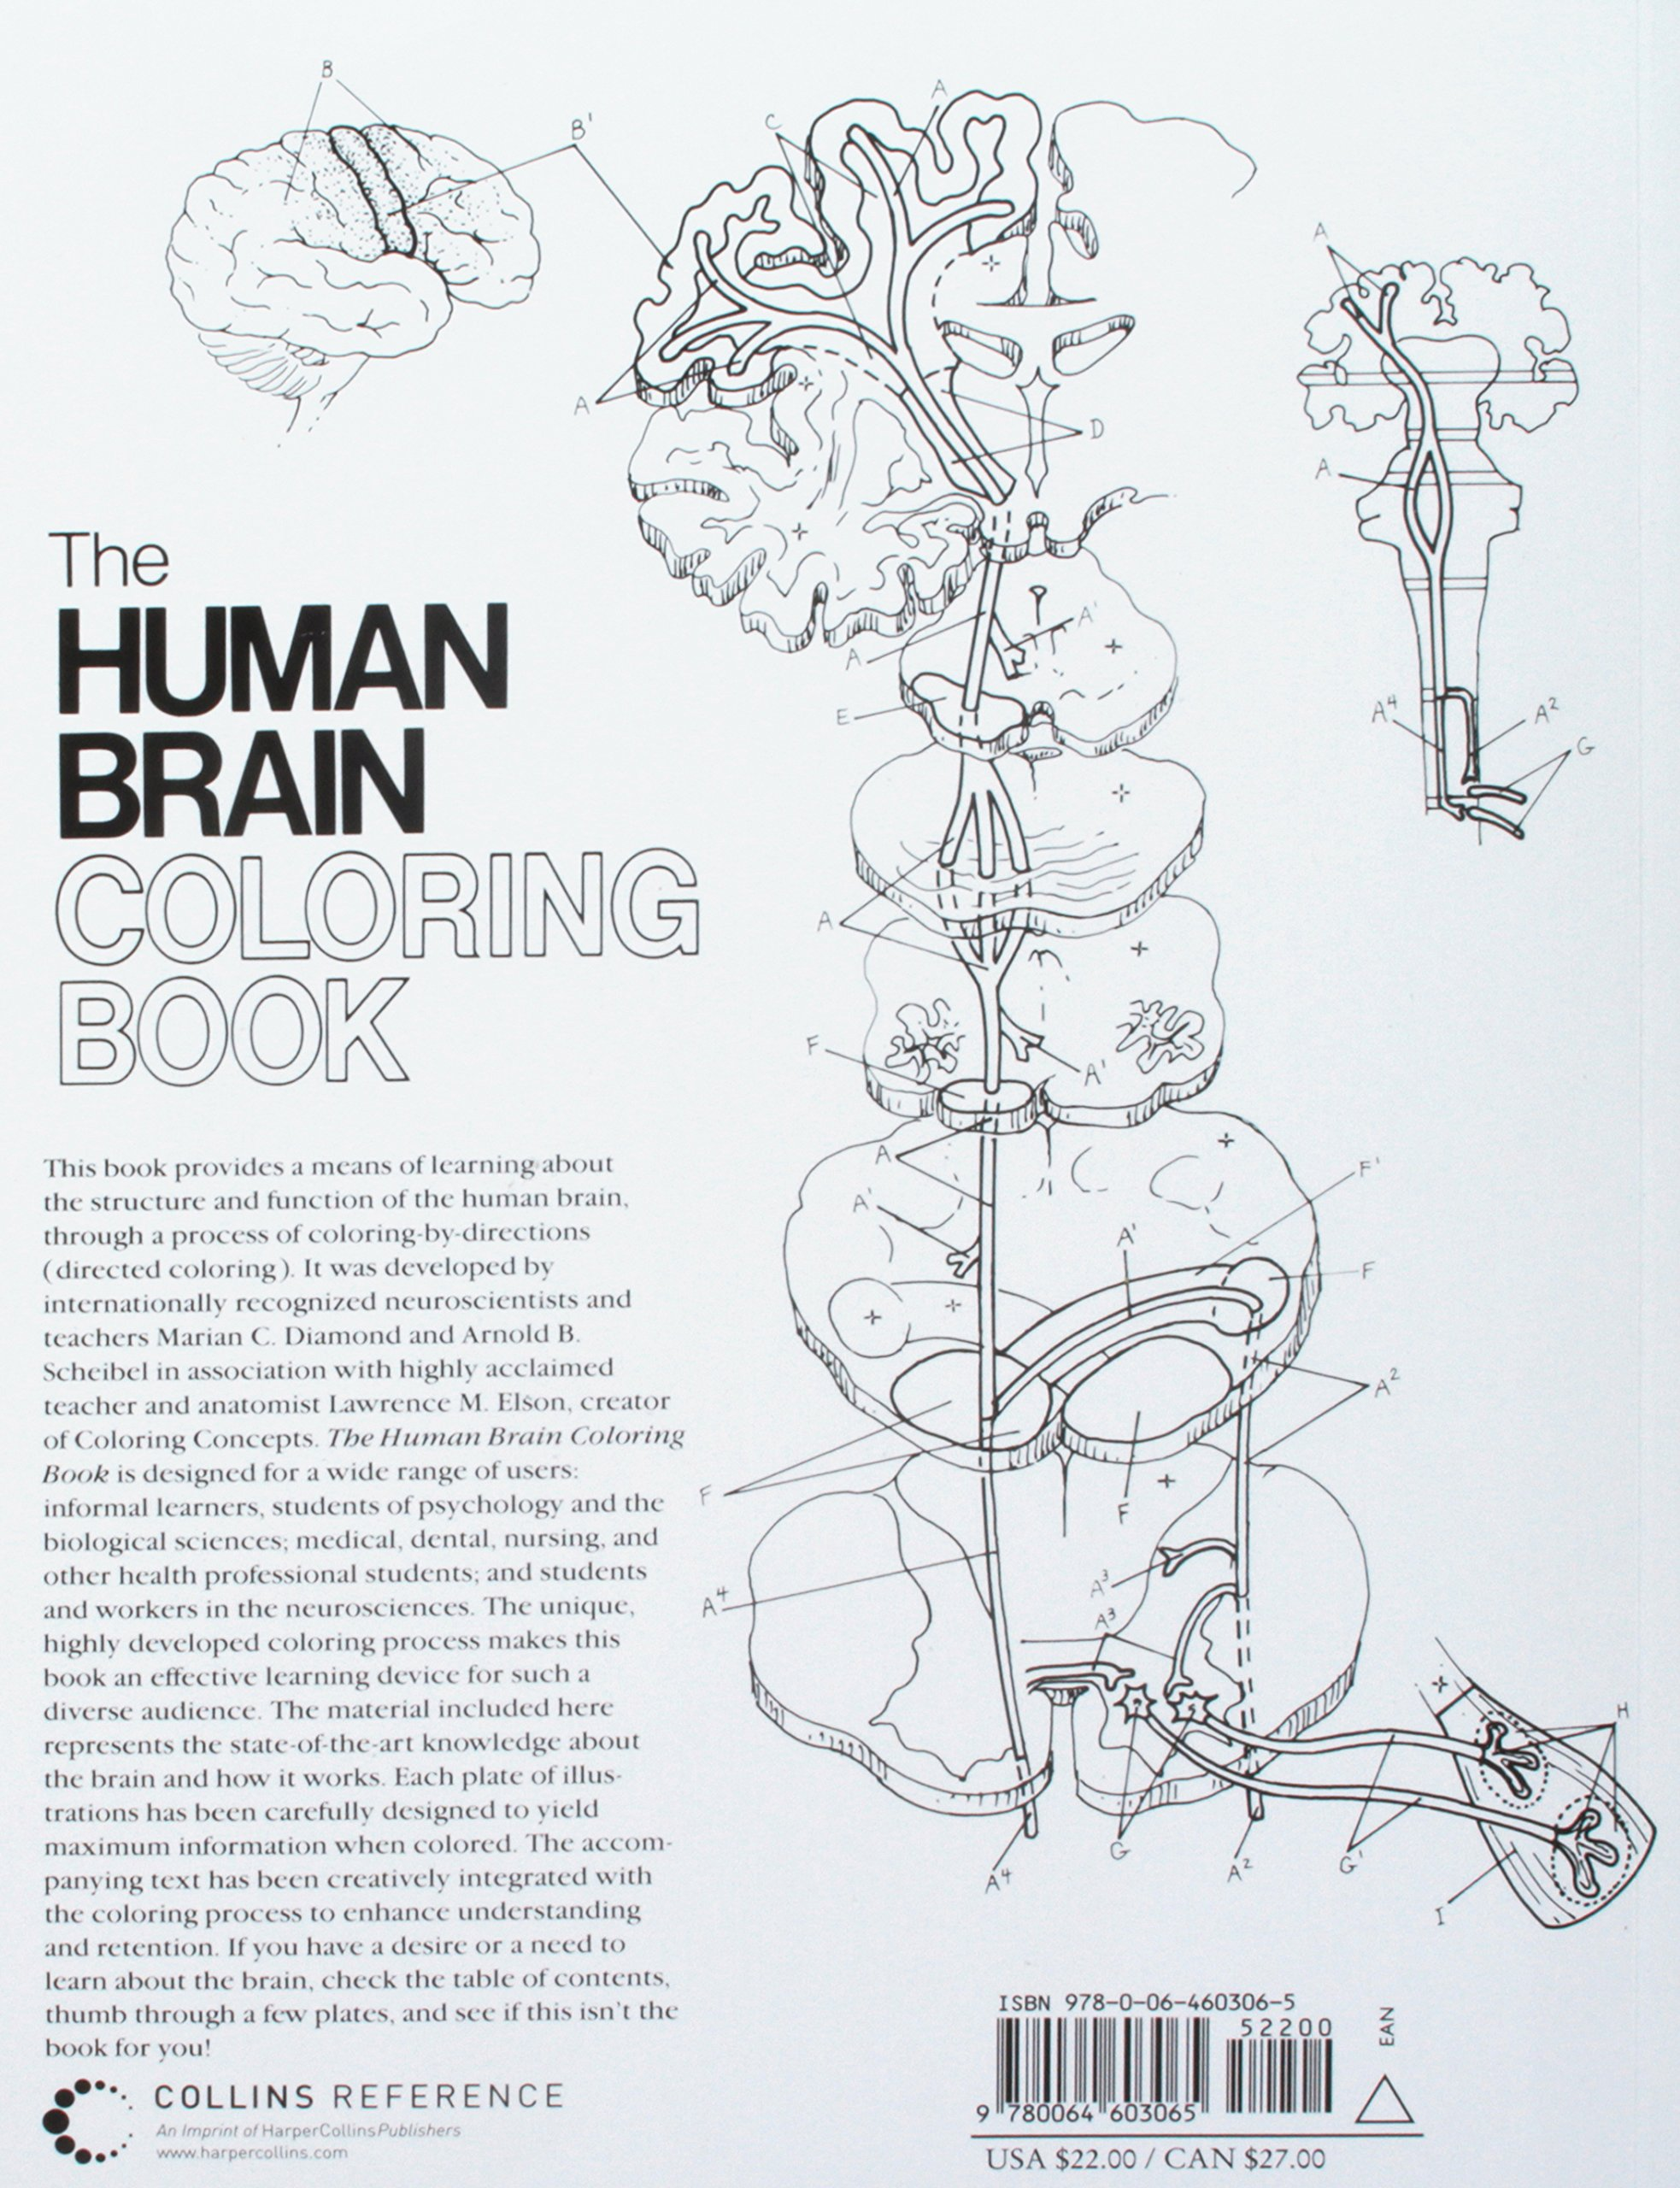 The Human Brain Coloring Book Coloring Concepts Series Amazon Co Uk